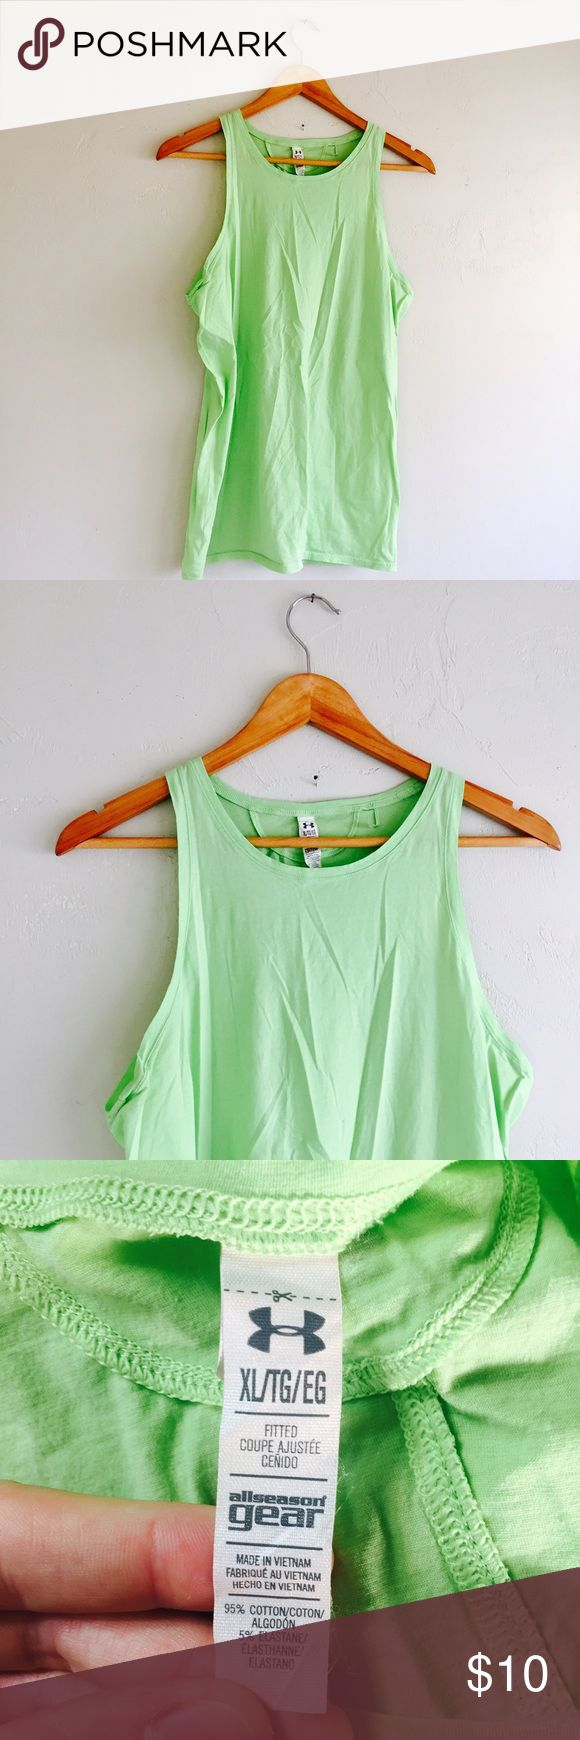 Under Armour Shirt Lime Green Tank Top Fitted XL Under Armour Shirt Lime Green Tank Top Fitted  Cotton elastane blend  Size Extra Large XL  Heat Gear all season gear  Small hole near neck, shoulder. See pictures Under Armour Tops Tank Tops